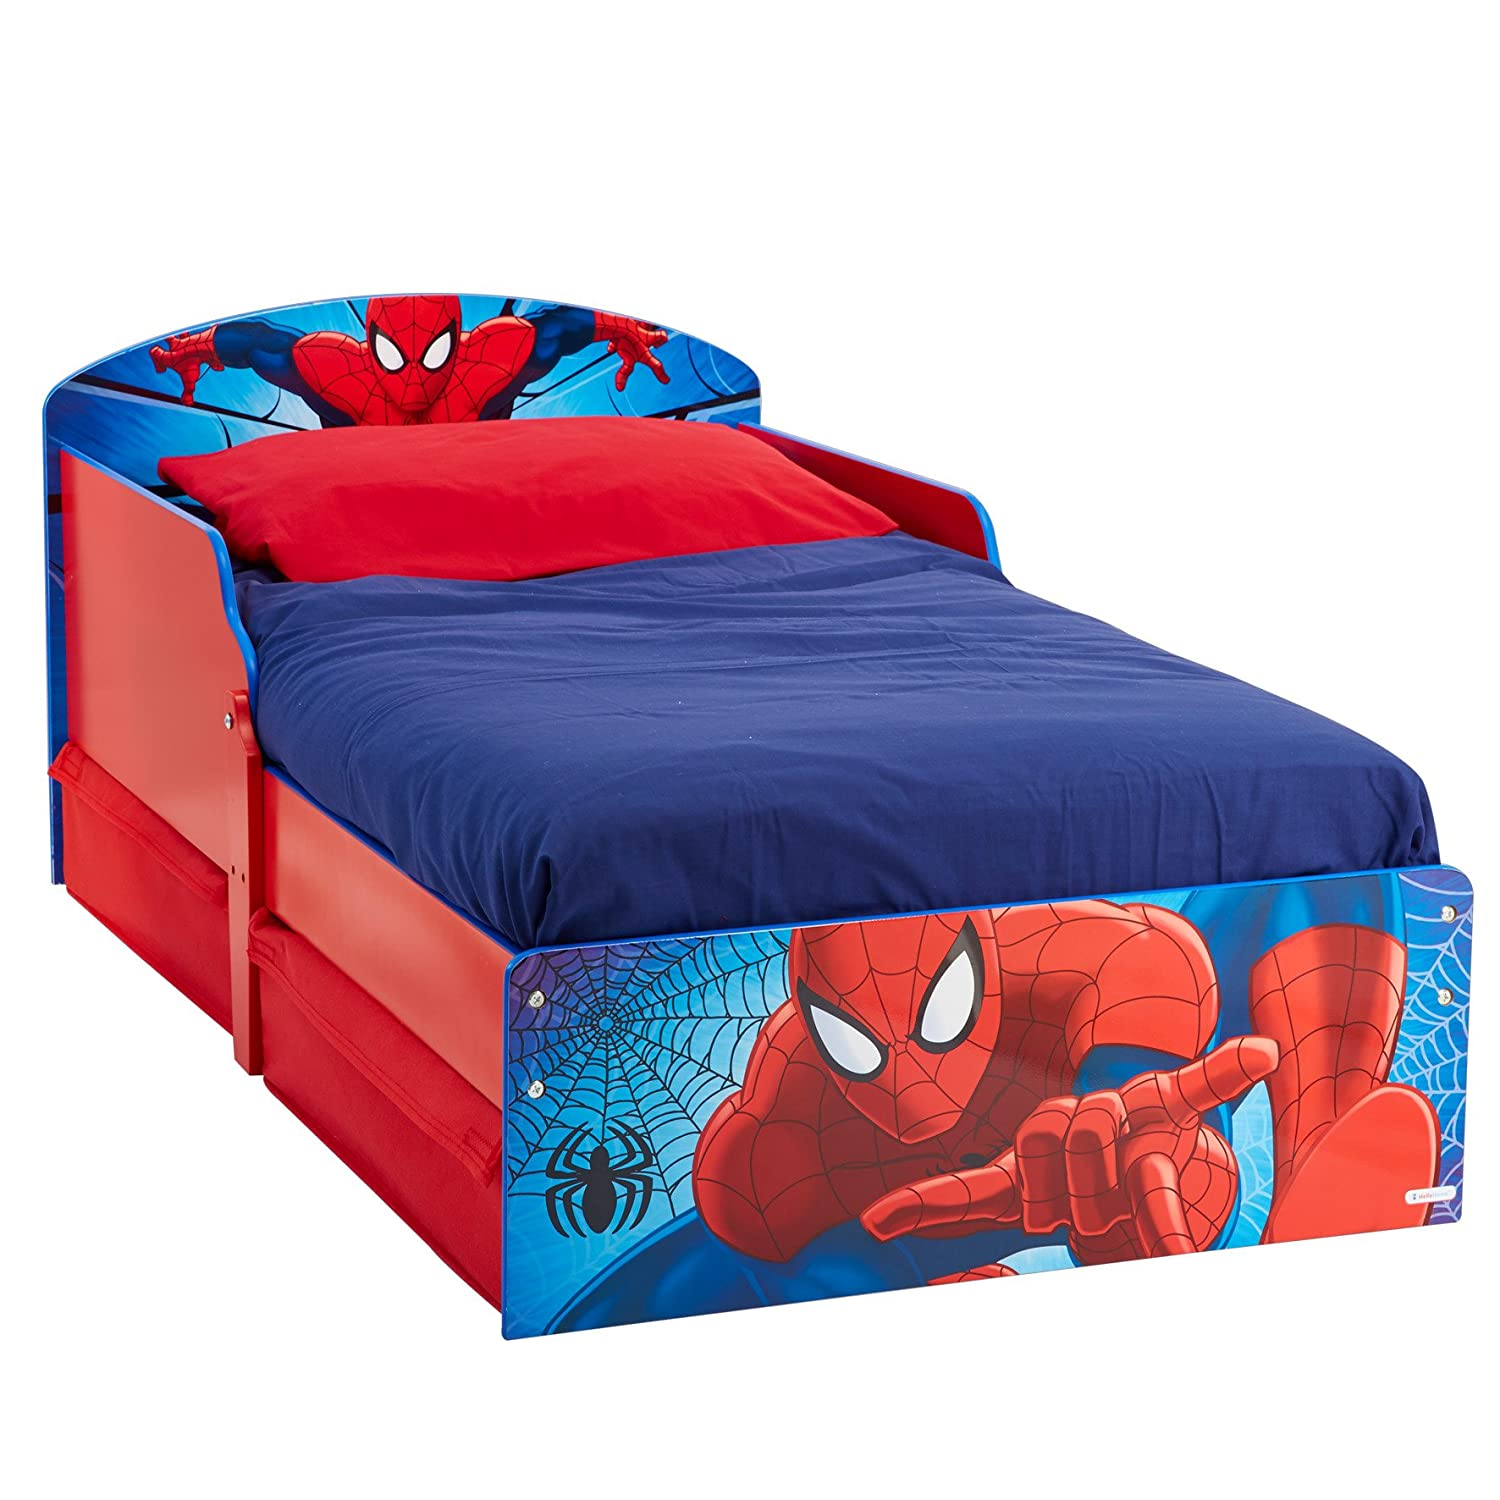 Spiderman Lit Enfant Tiroirs De Rangement Hello Home Room Studio 516SPA